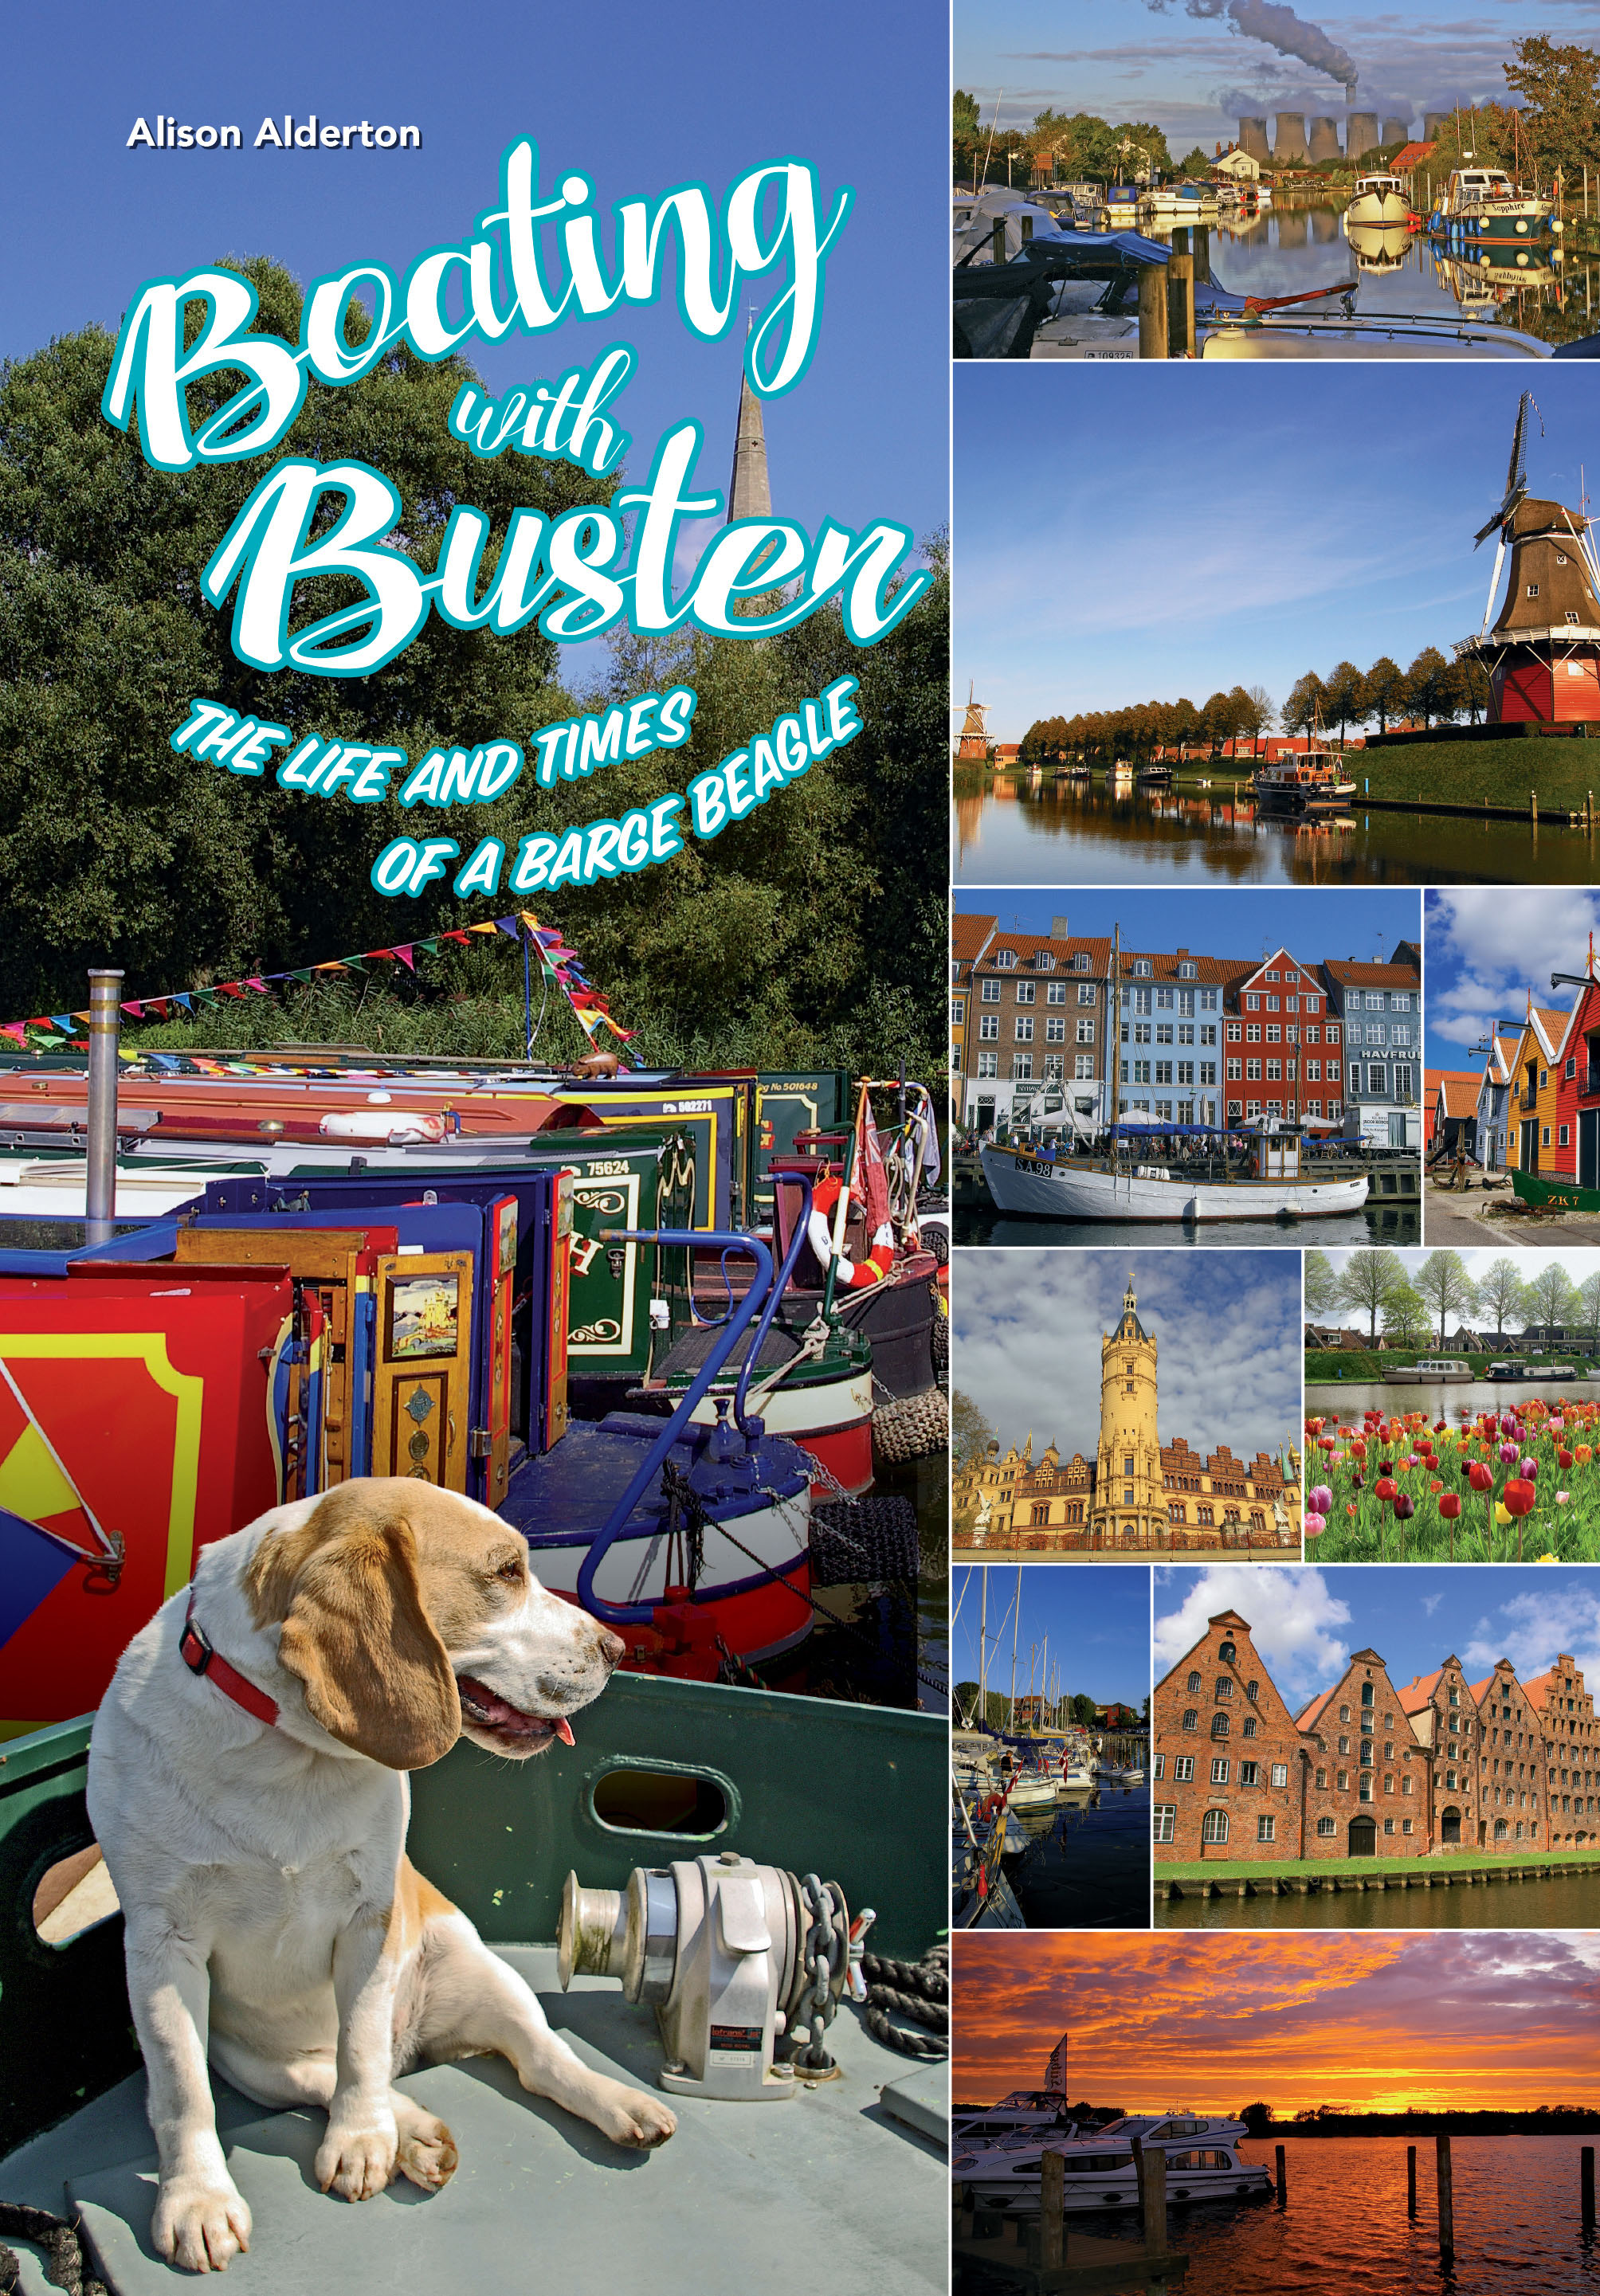 Boating with Buster - the life and times of a barge beagle